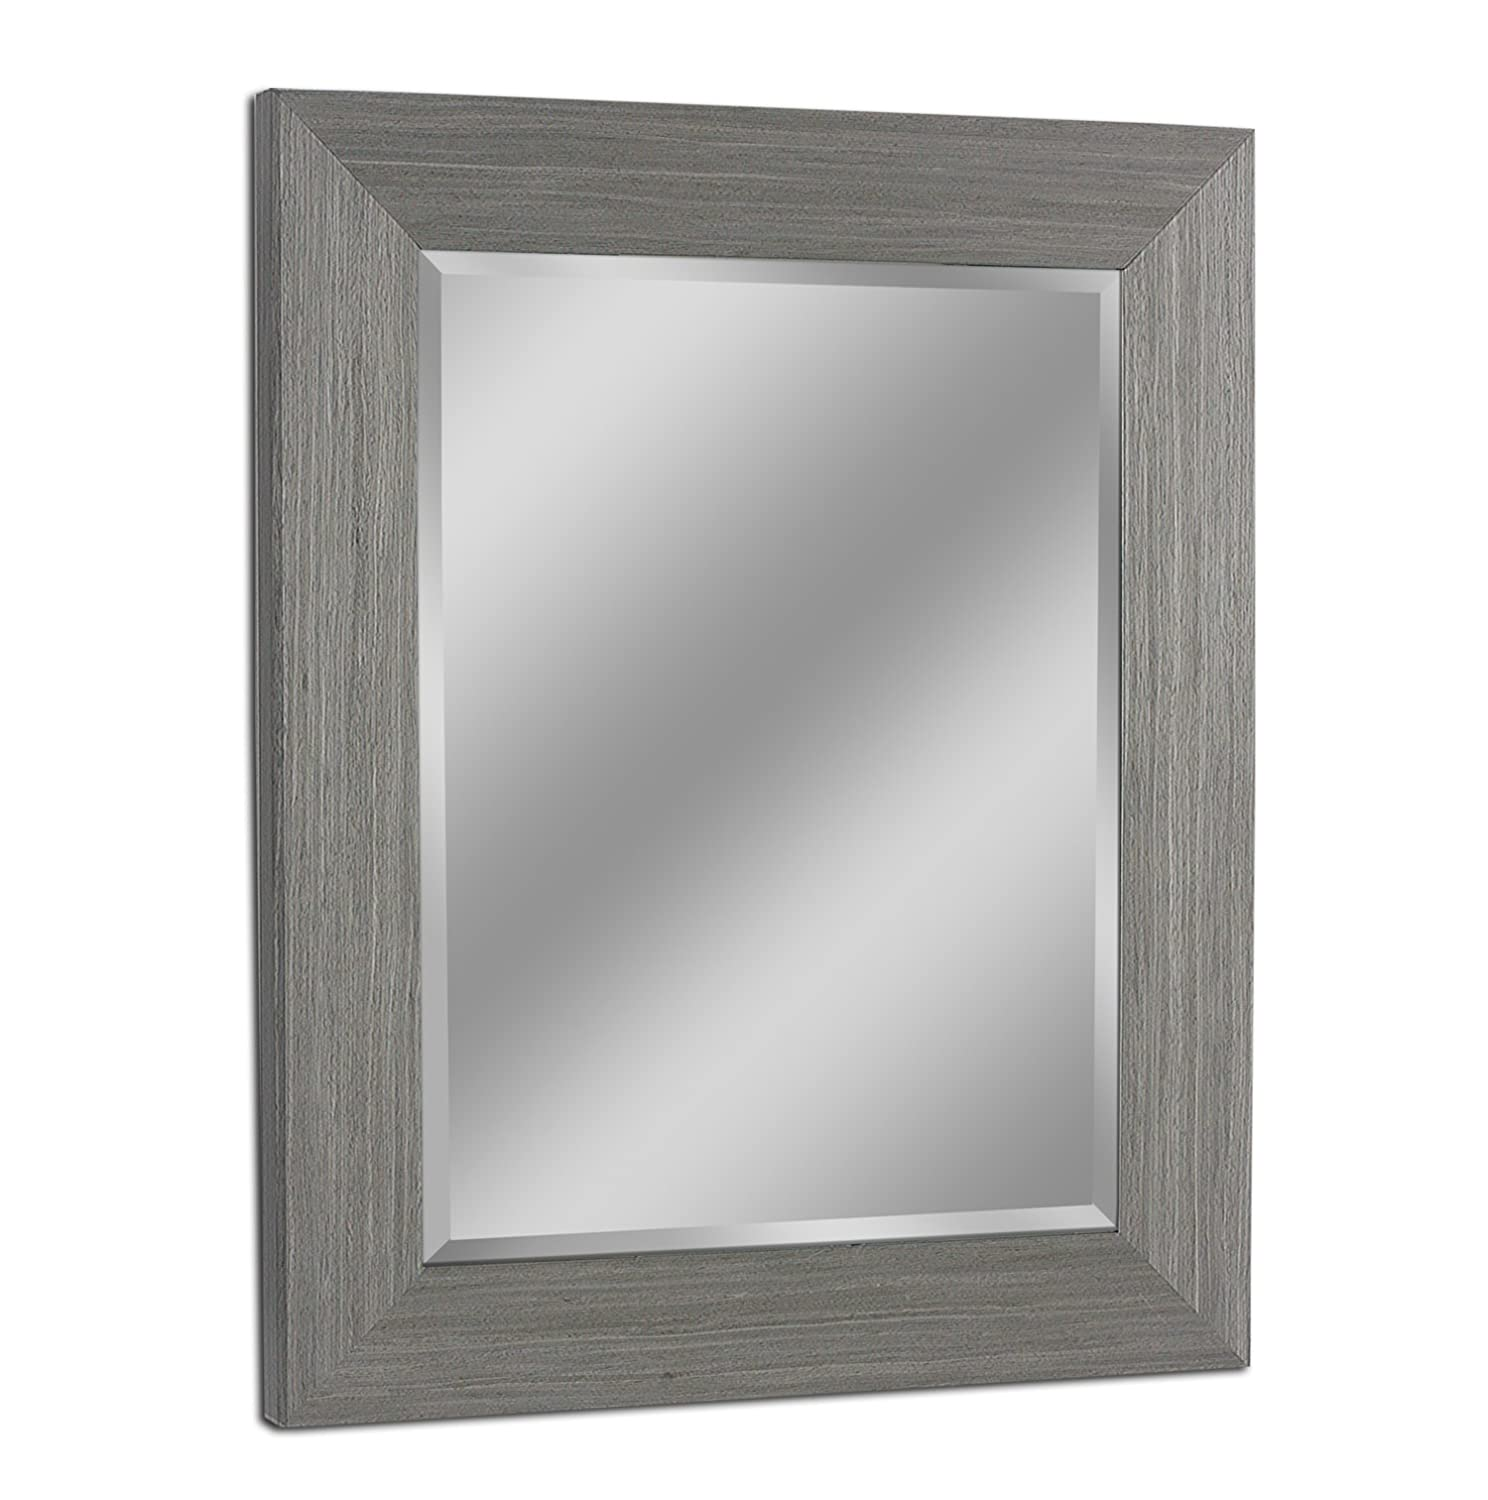 Amazon Headwest 8012 Rustic Box Driftwood Wall Mirror in Light